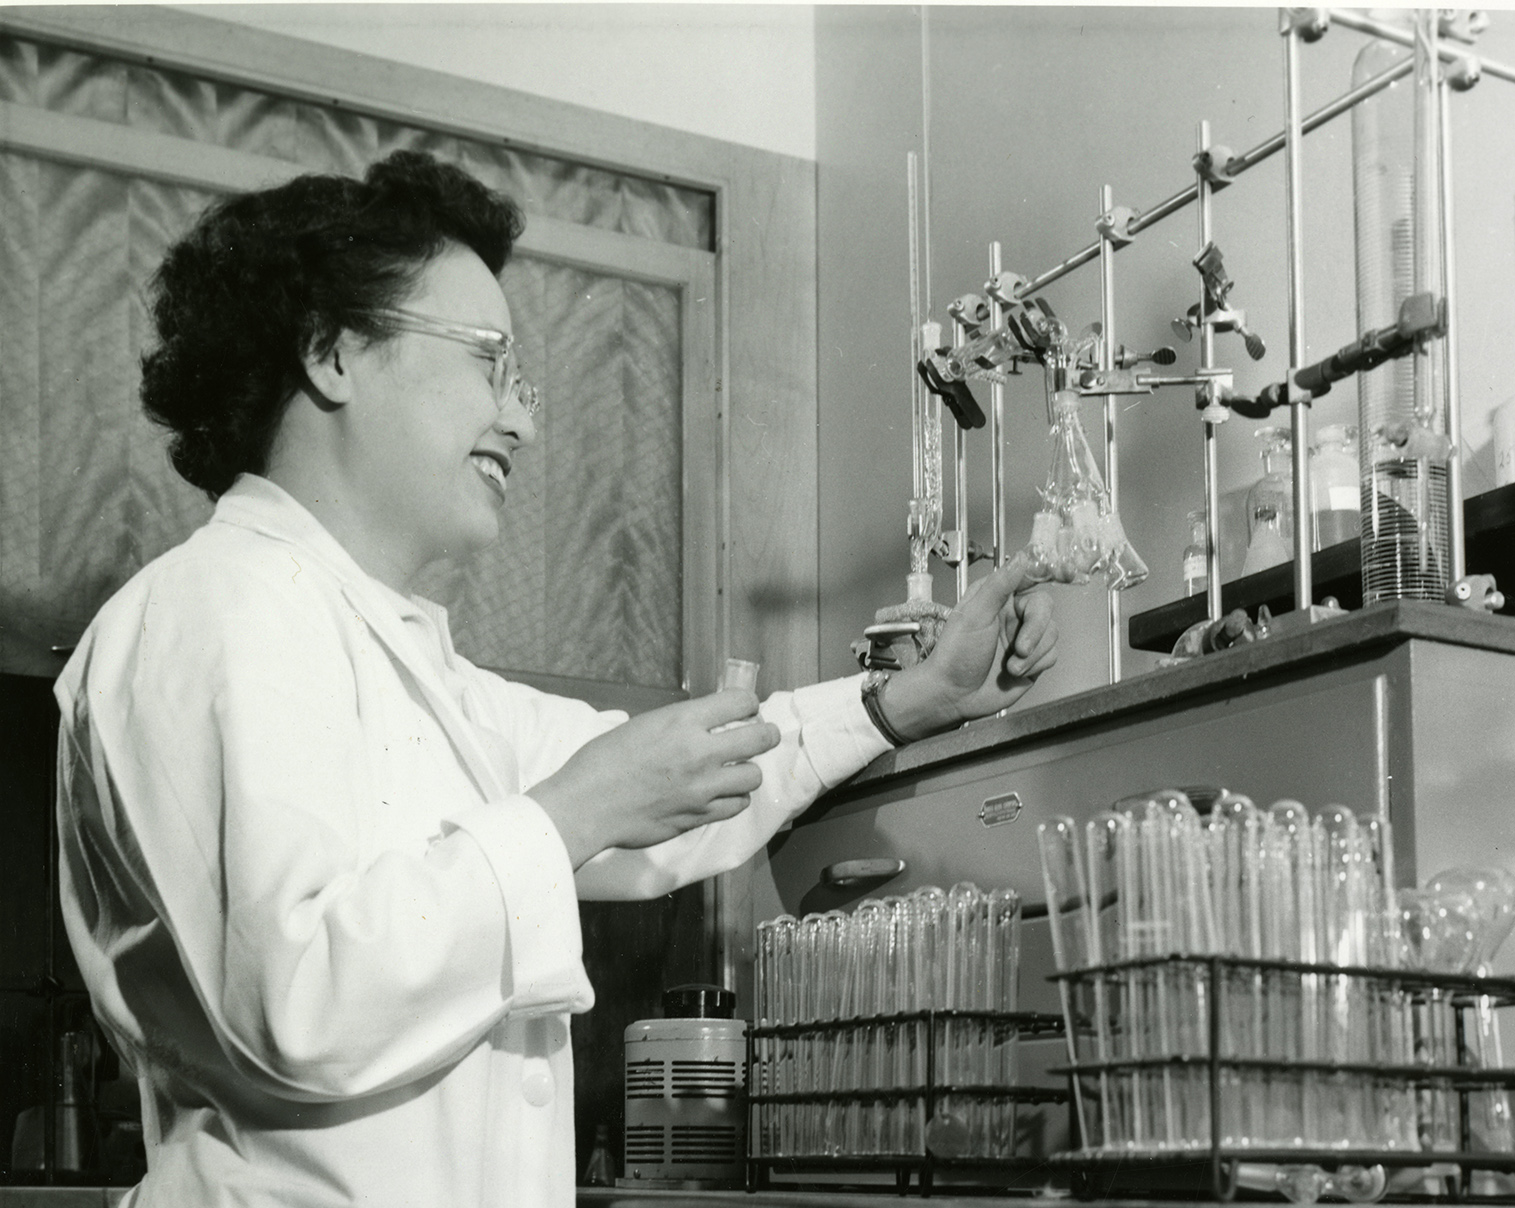 Rose Wong, Ph.D., works in a biochemistry lab with pipettes